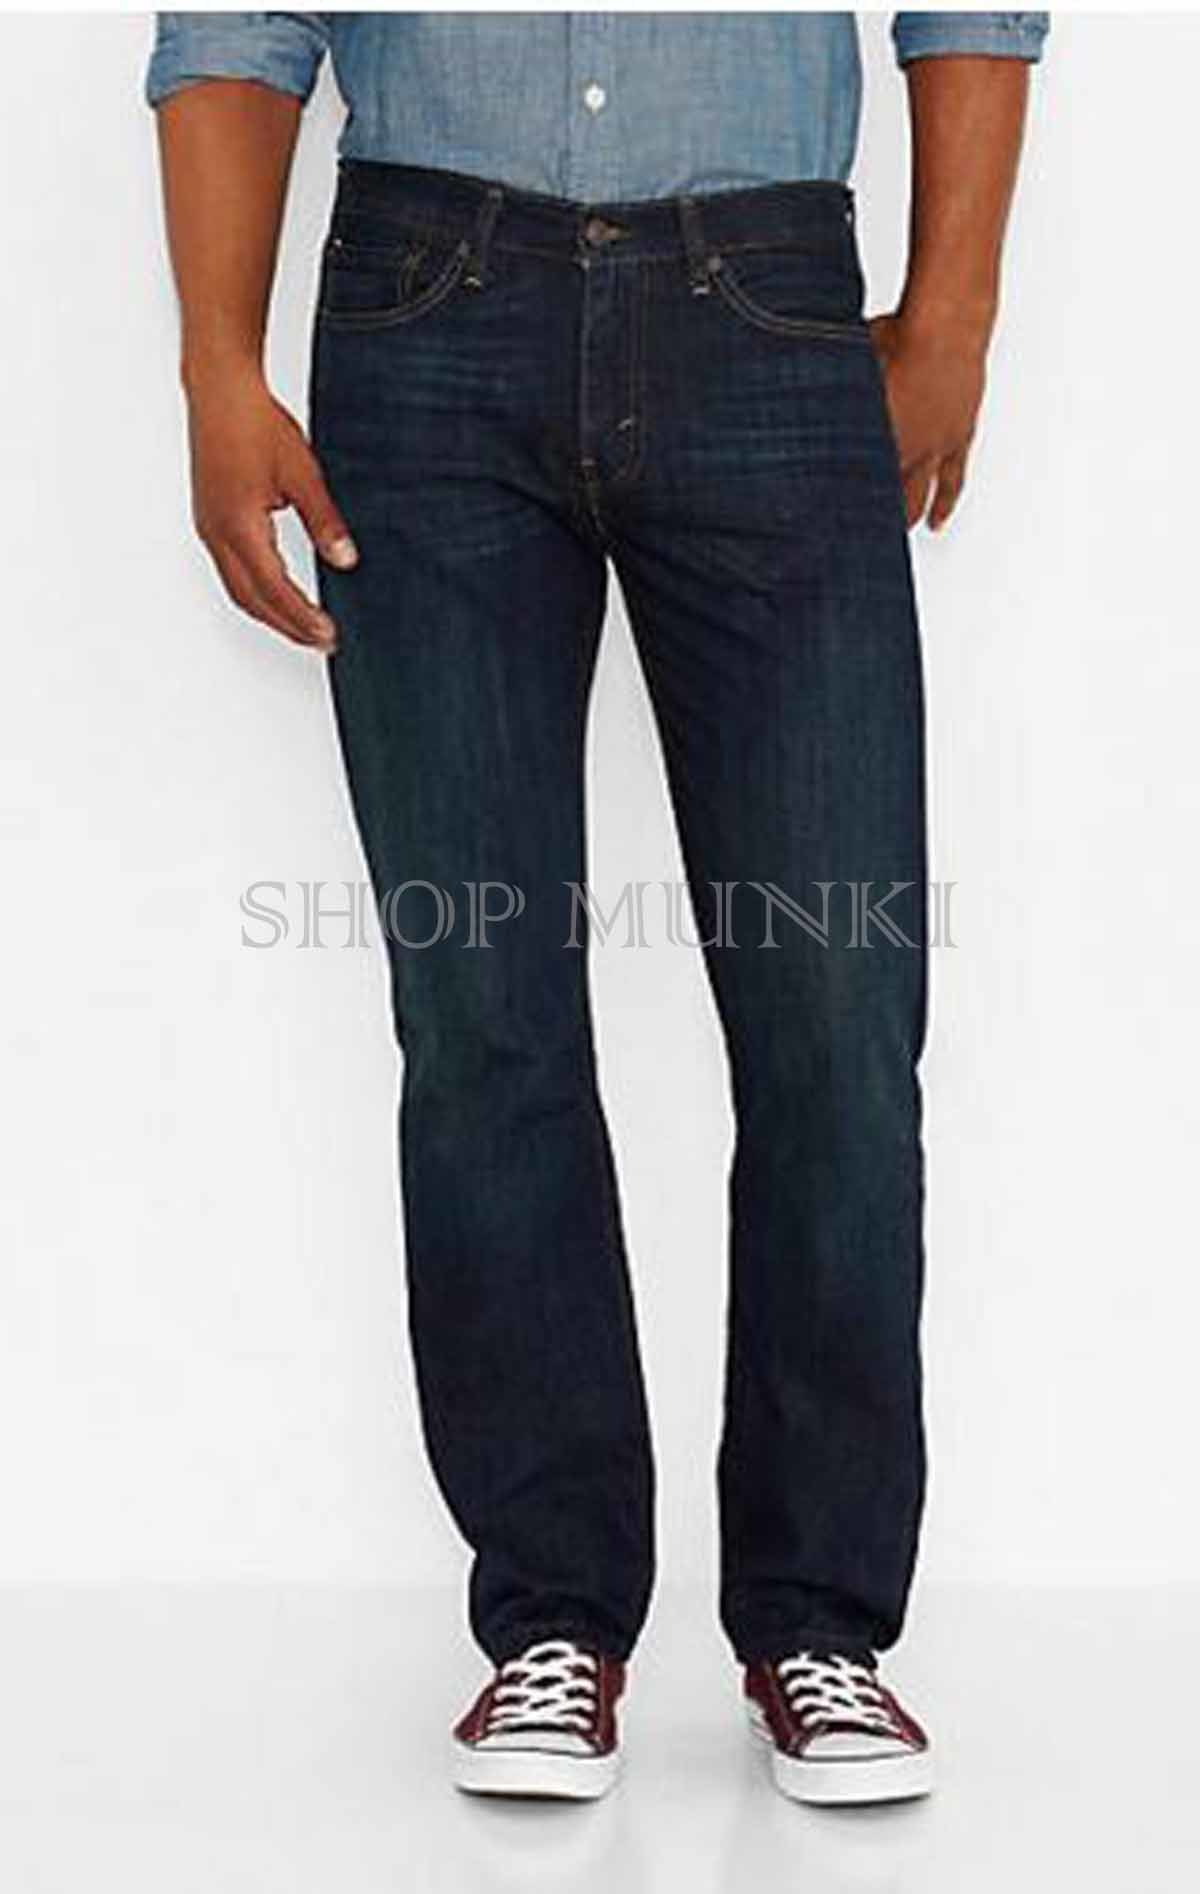 Levi's 514 Men's Regular Fit Straight Leg Comfort Stretch ...